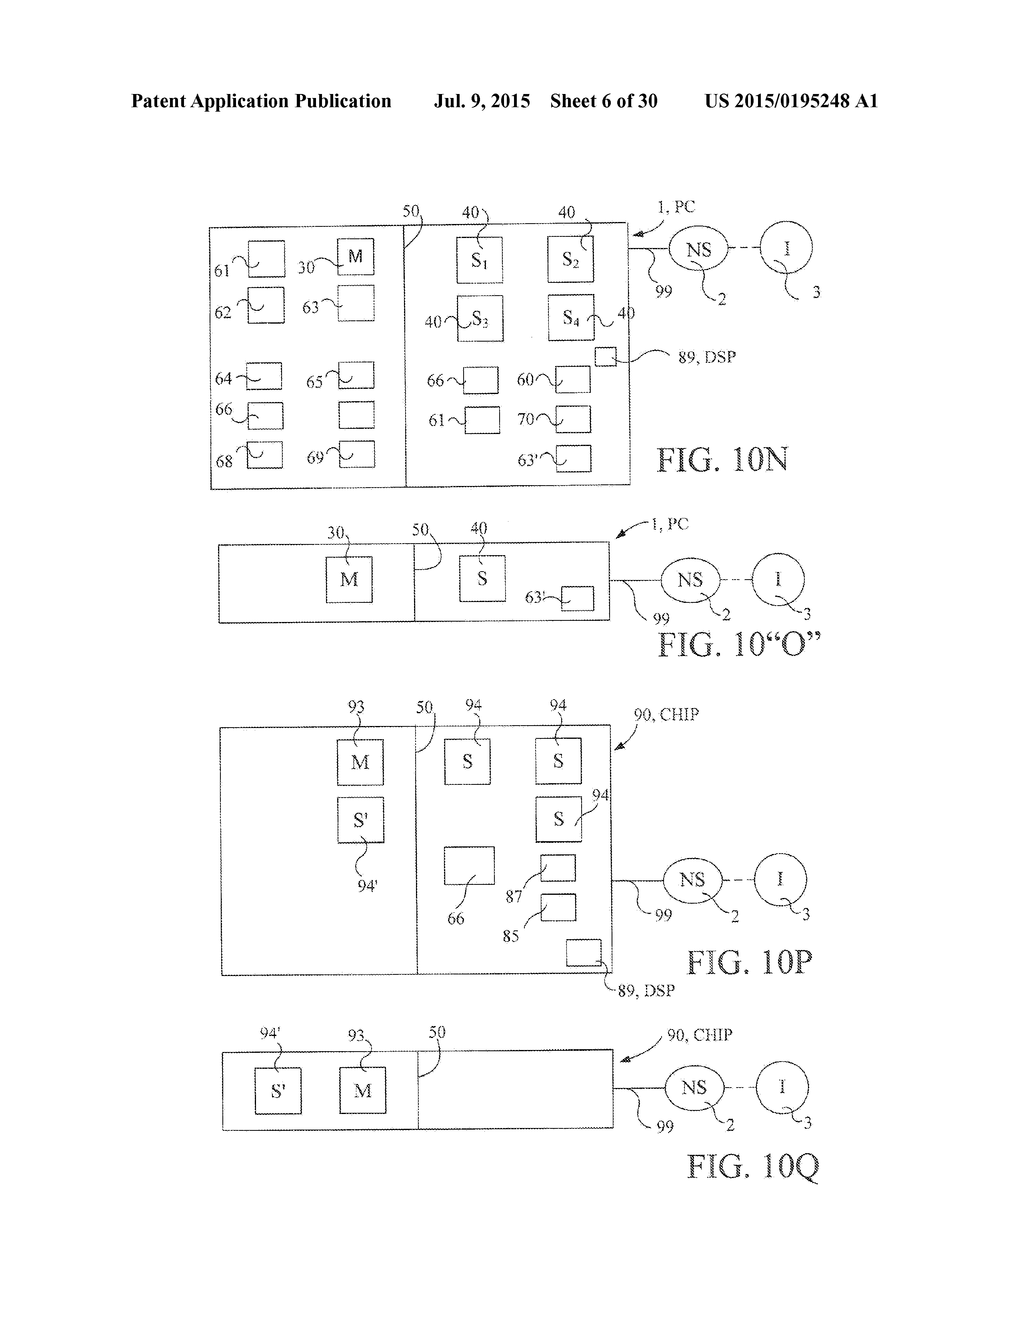 puter or microchip controlled by a firewall protected master Intel Microprocessor Block Diagram puter or microchip controlled by a firewall protected master controlling microprocessor and firmware diagram schematic and image 08